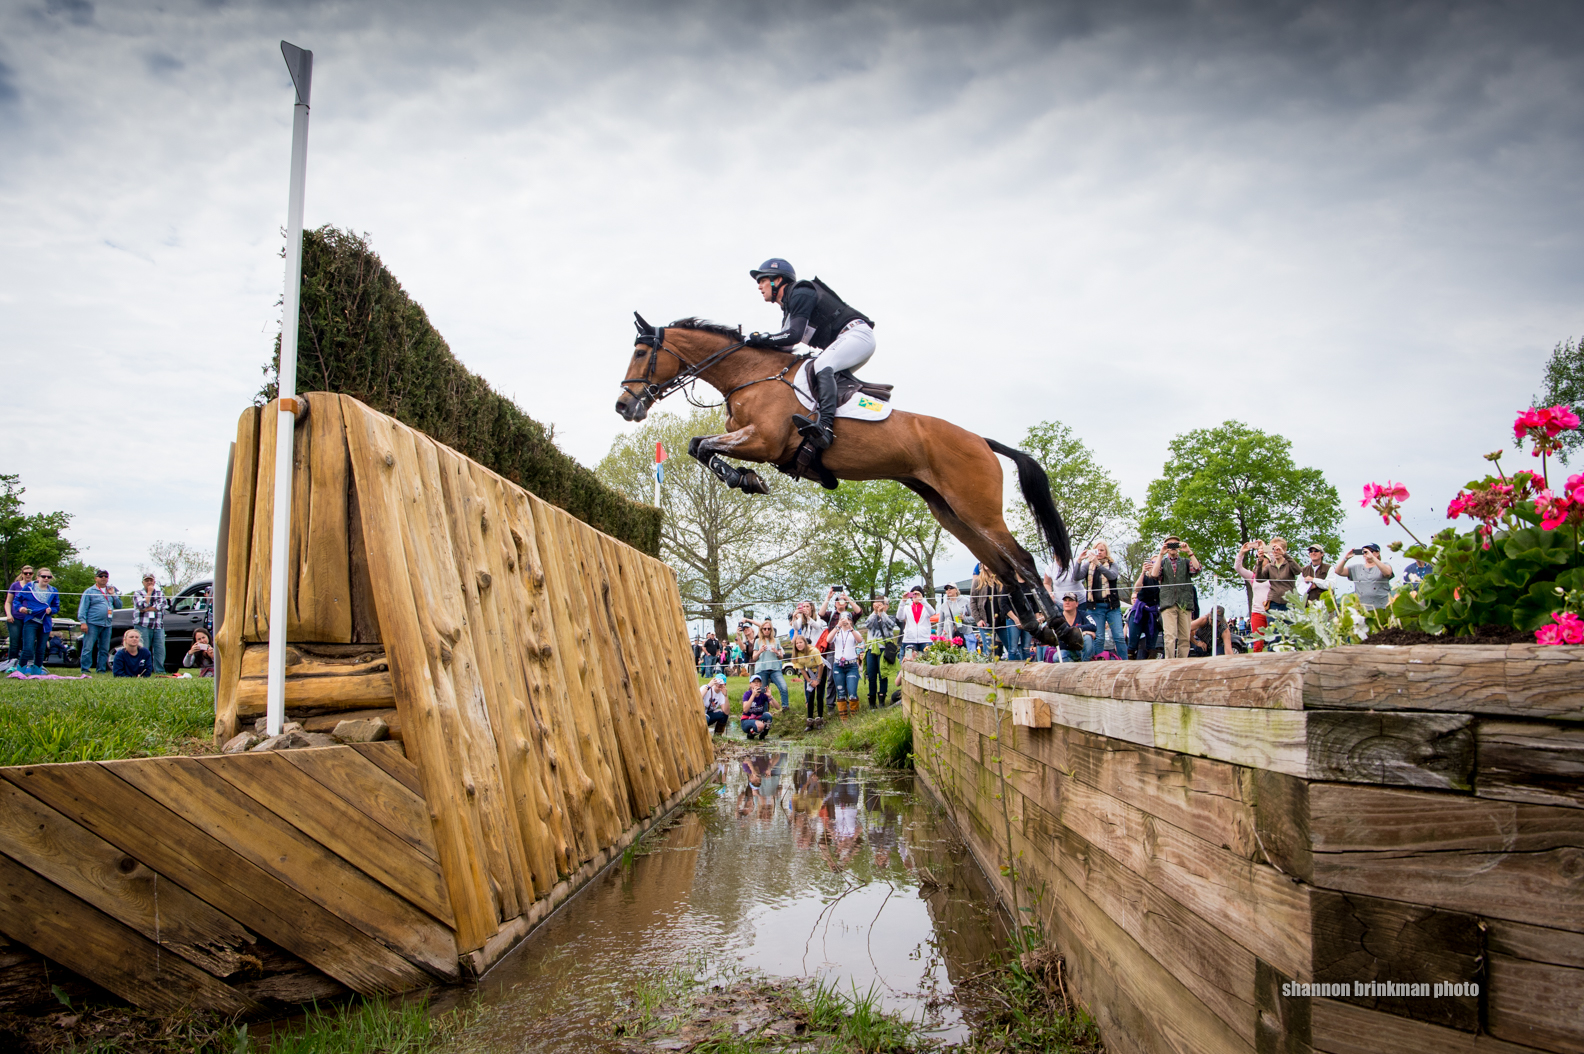 Cross Country Quotes >> Top Quotes from Cross Country Day at Kentucky | Eventing Nation - Three-Day Eventing News ...